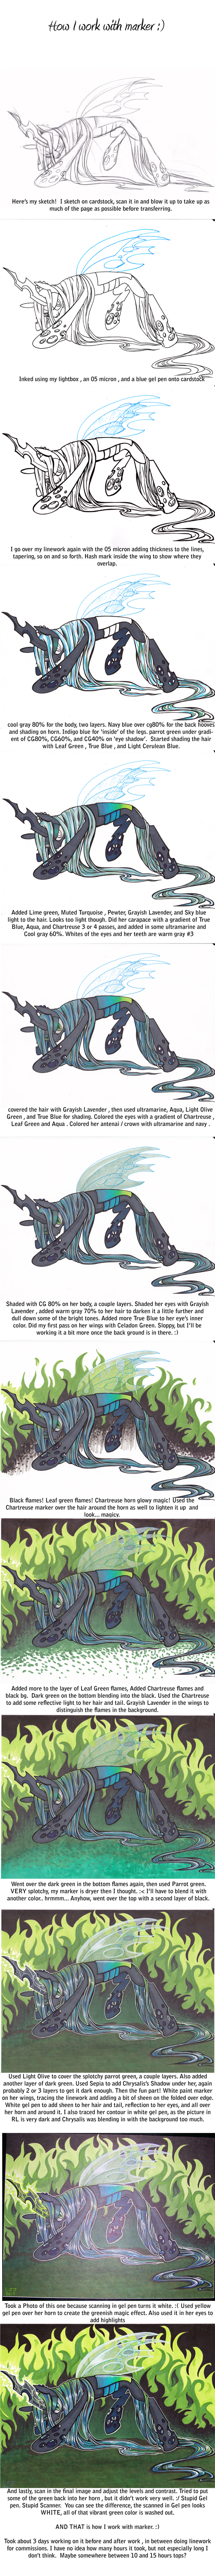 walk through : Chrysalis in marker by lizspit